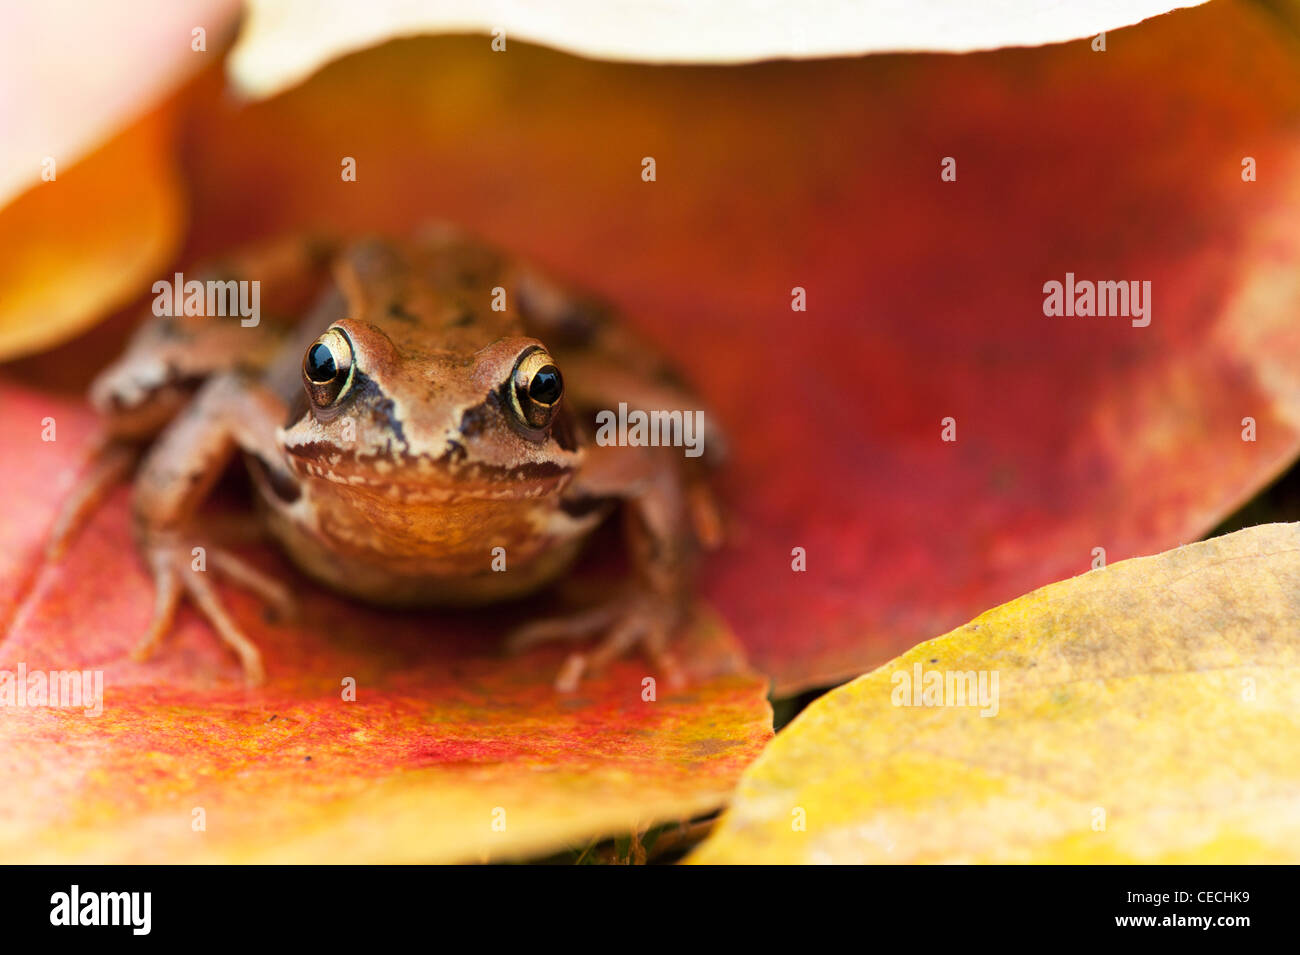 Common garden Frog 'Rana Temporaria' sitting under colourful autumn tree leaves - Stock Image